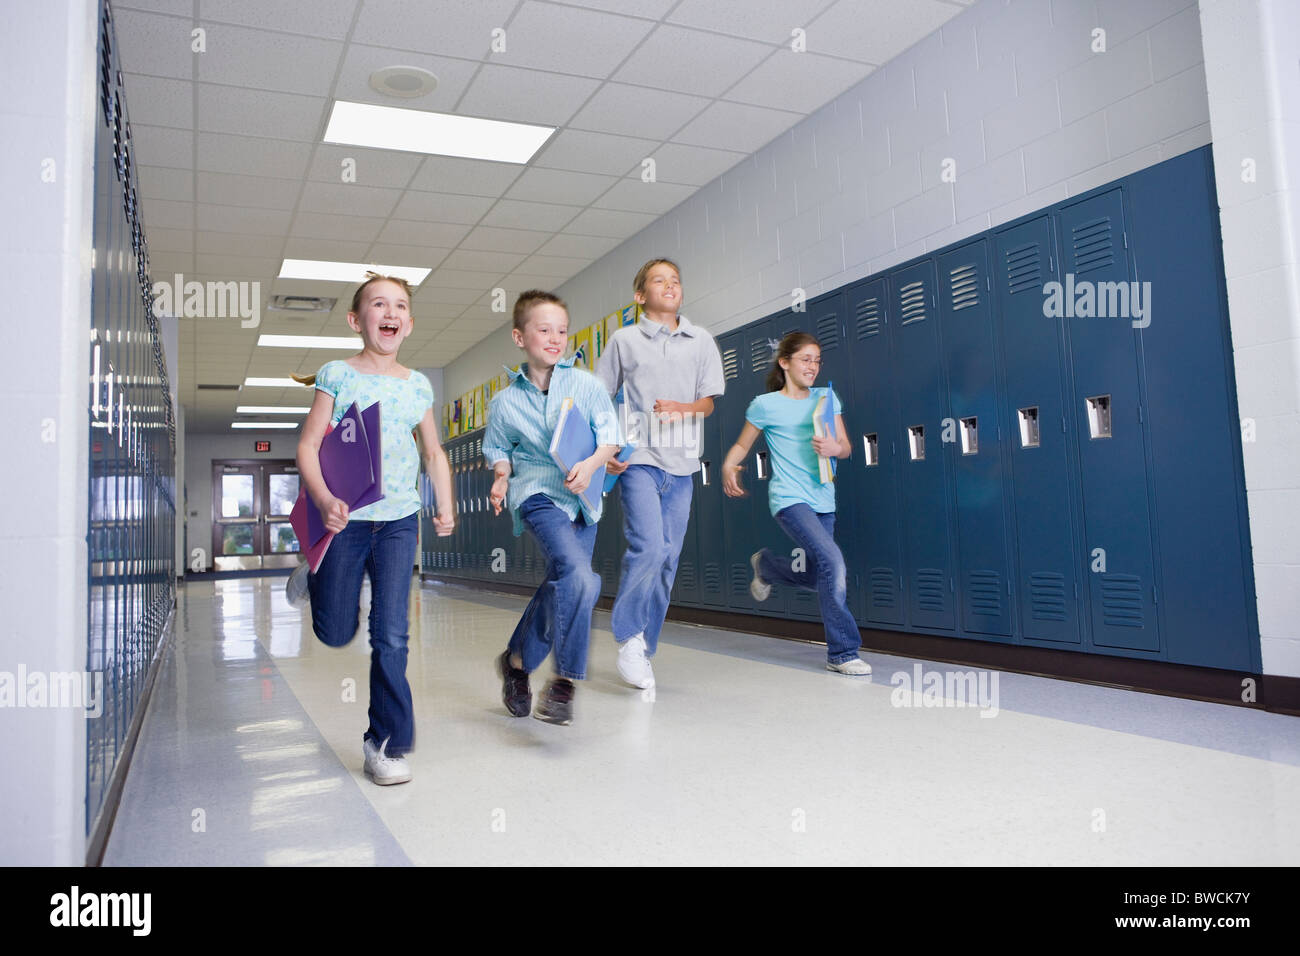 USA, Illinois, Metamora, Children (8-9, 10-11) running through school corridor - Stock Image